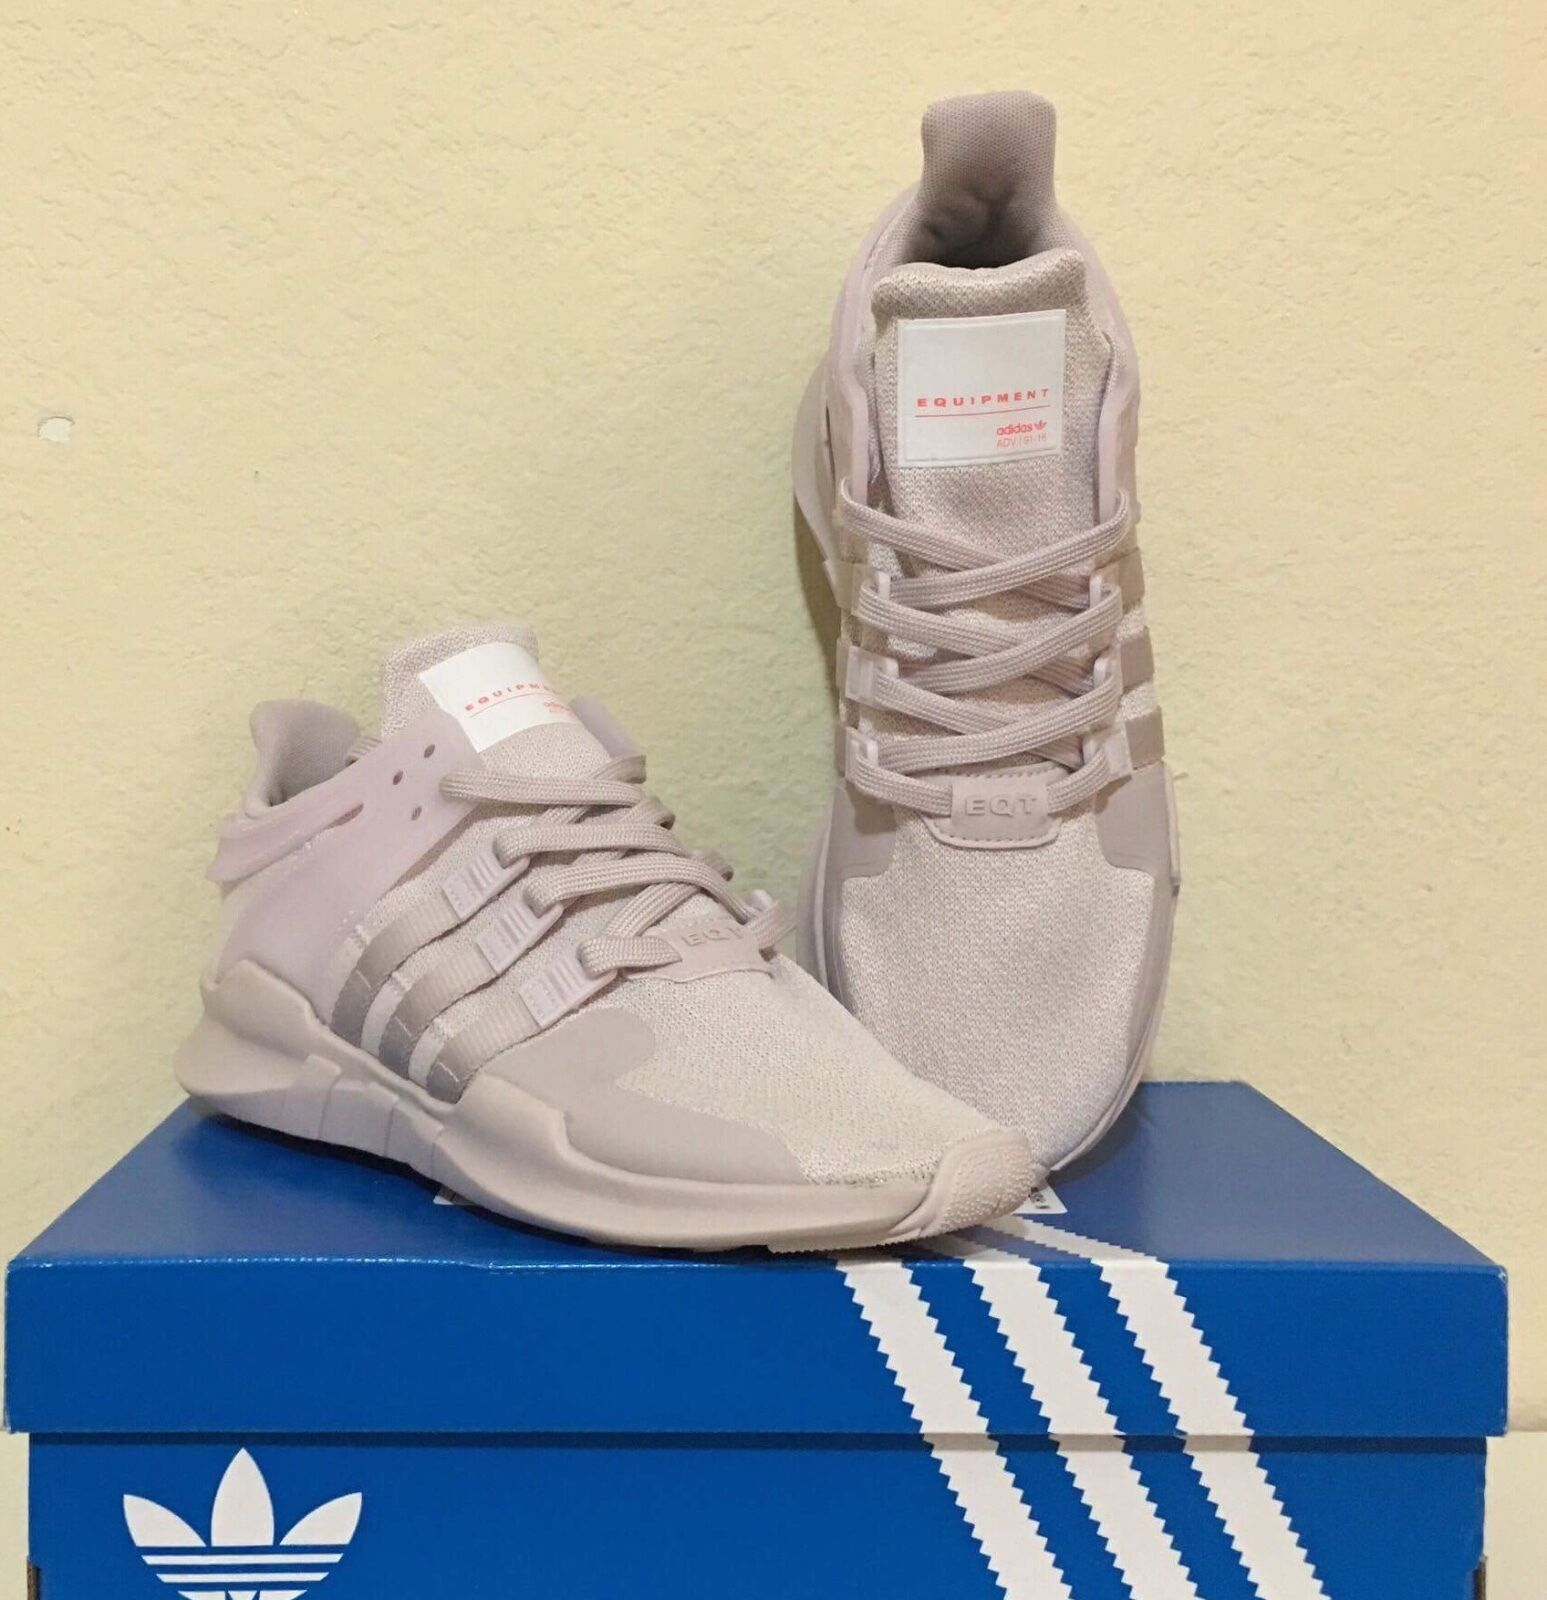 meet 88f65 86bc4 ... new style adidas womens equipment support adv shoes in 8 ice purple us  7.5 ee2d4 5a7b2 ...